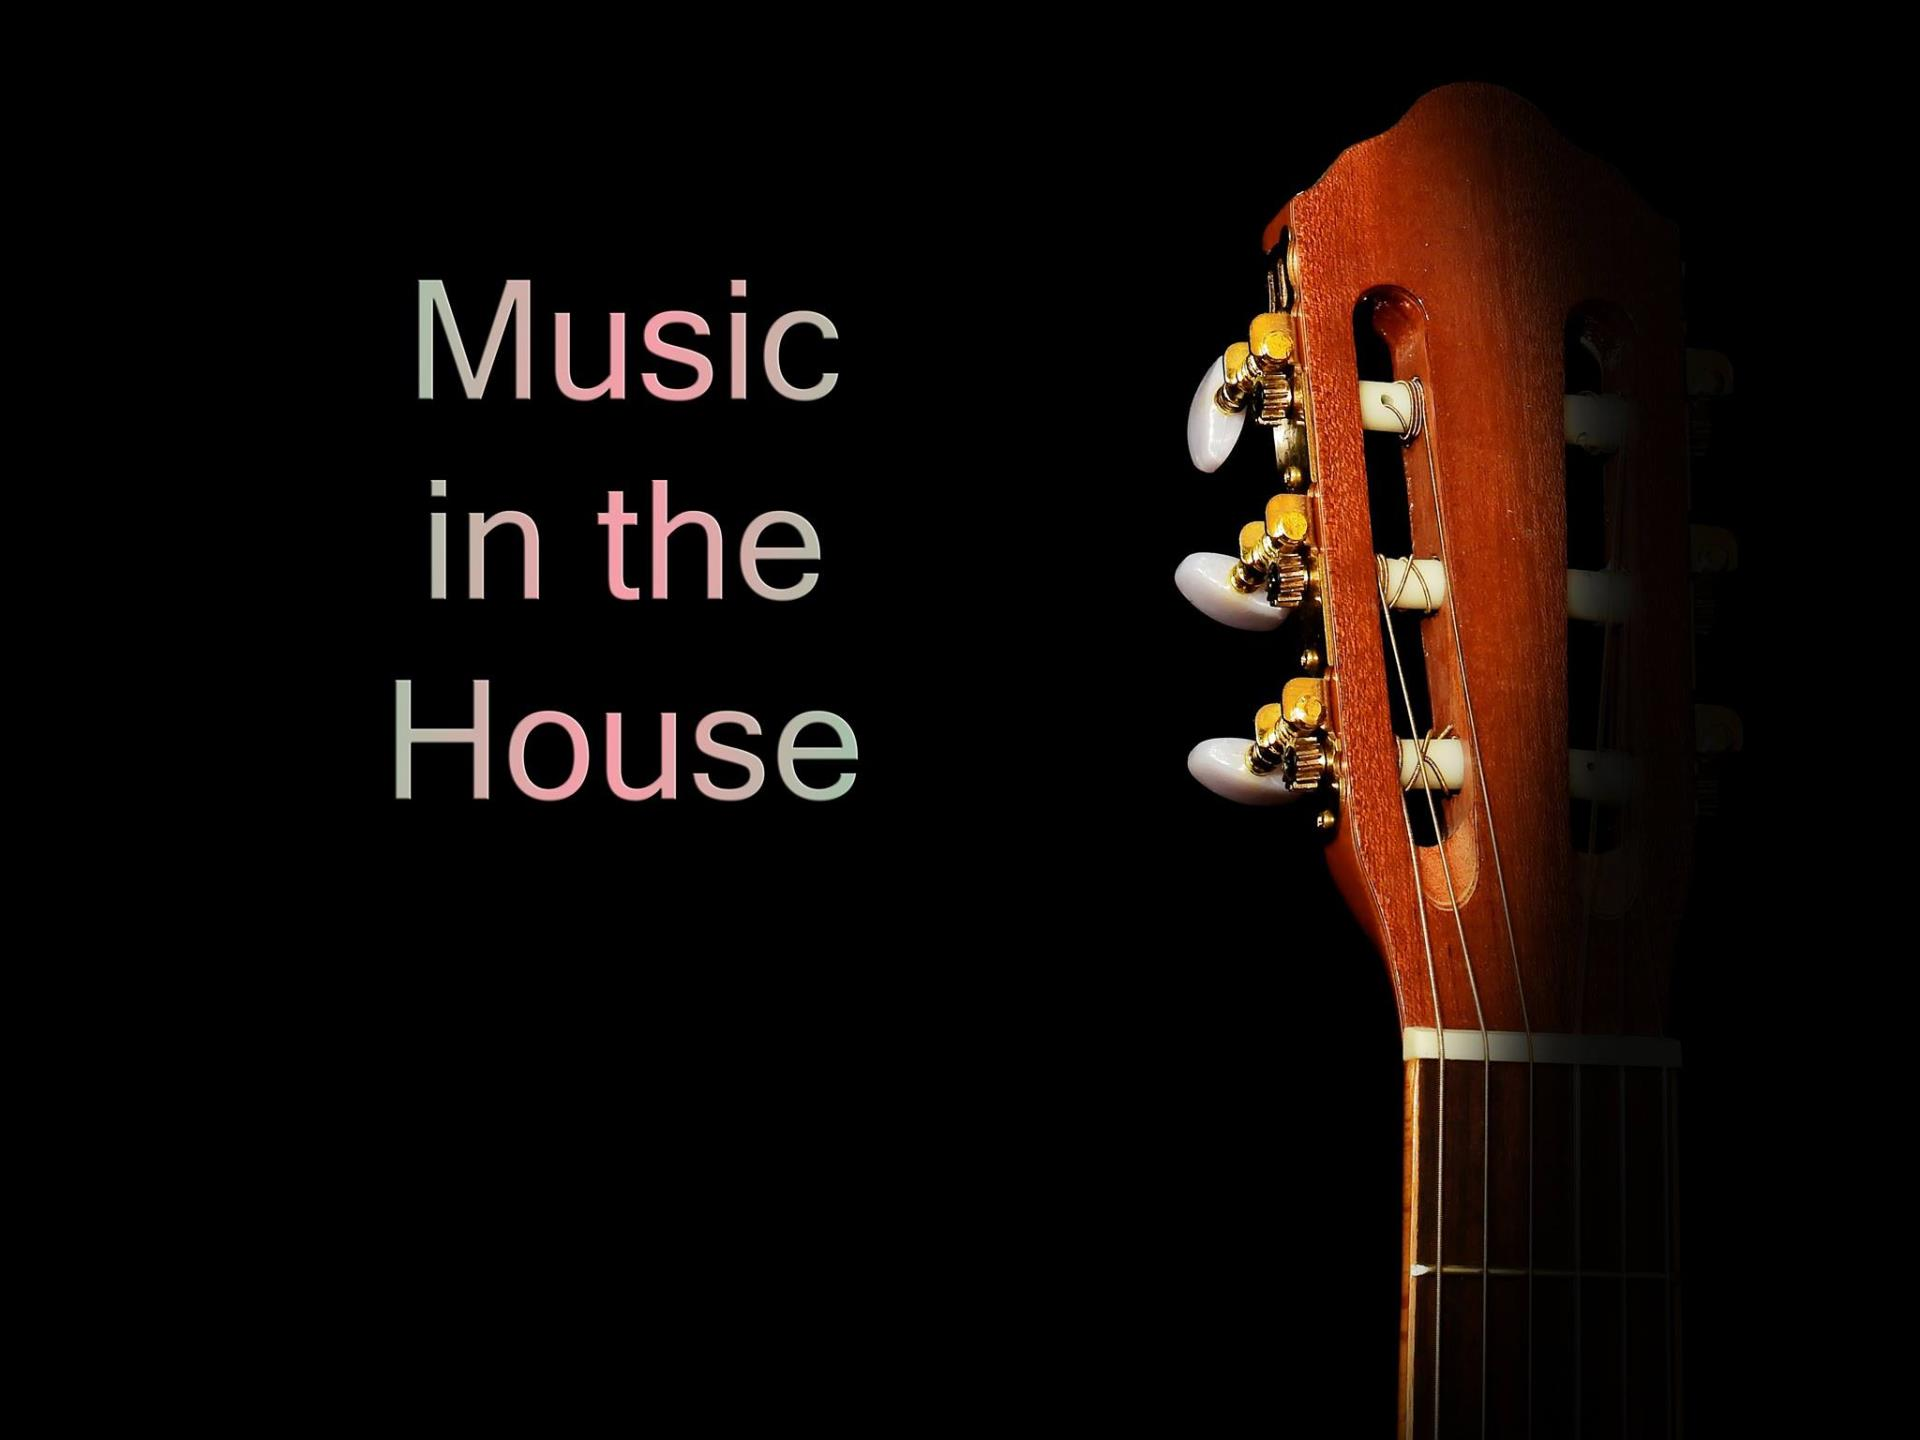 music in the house